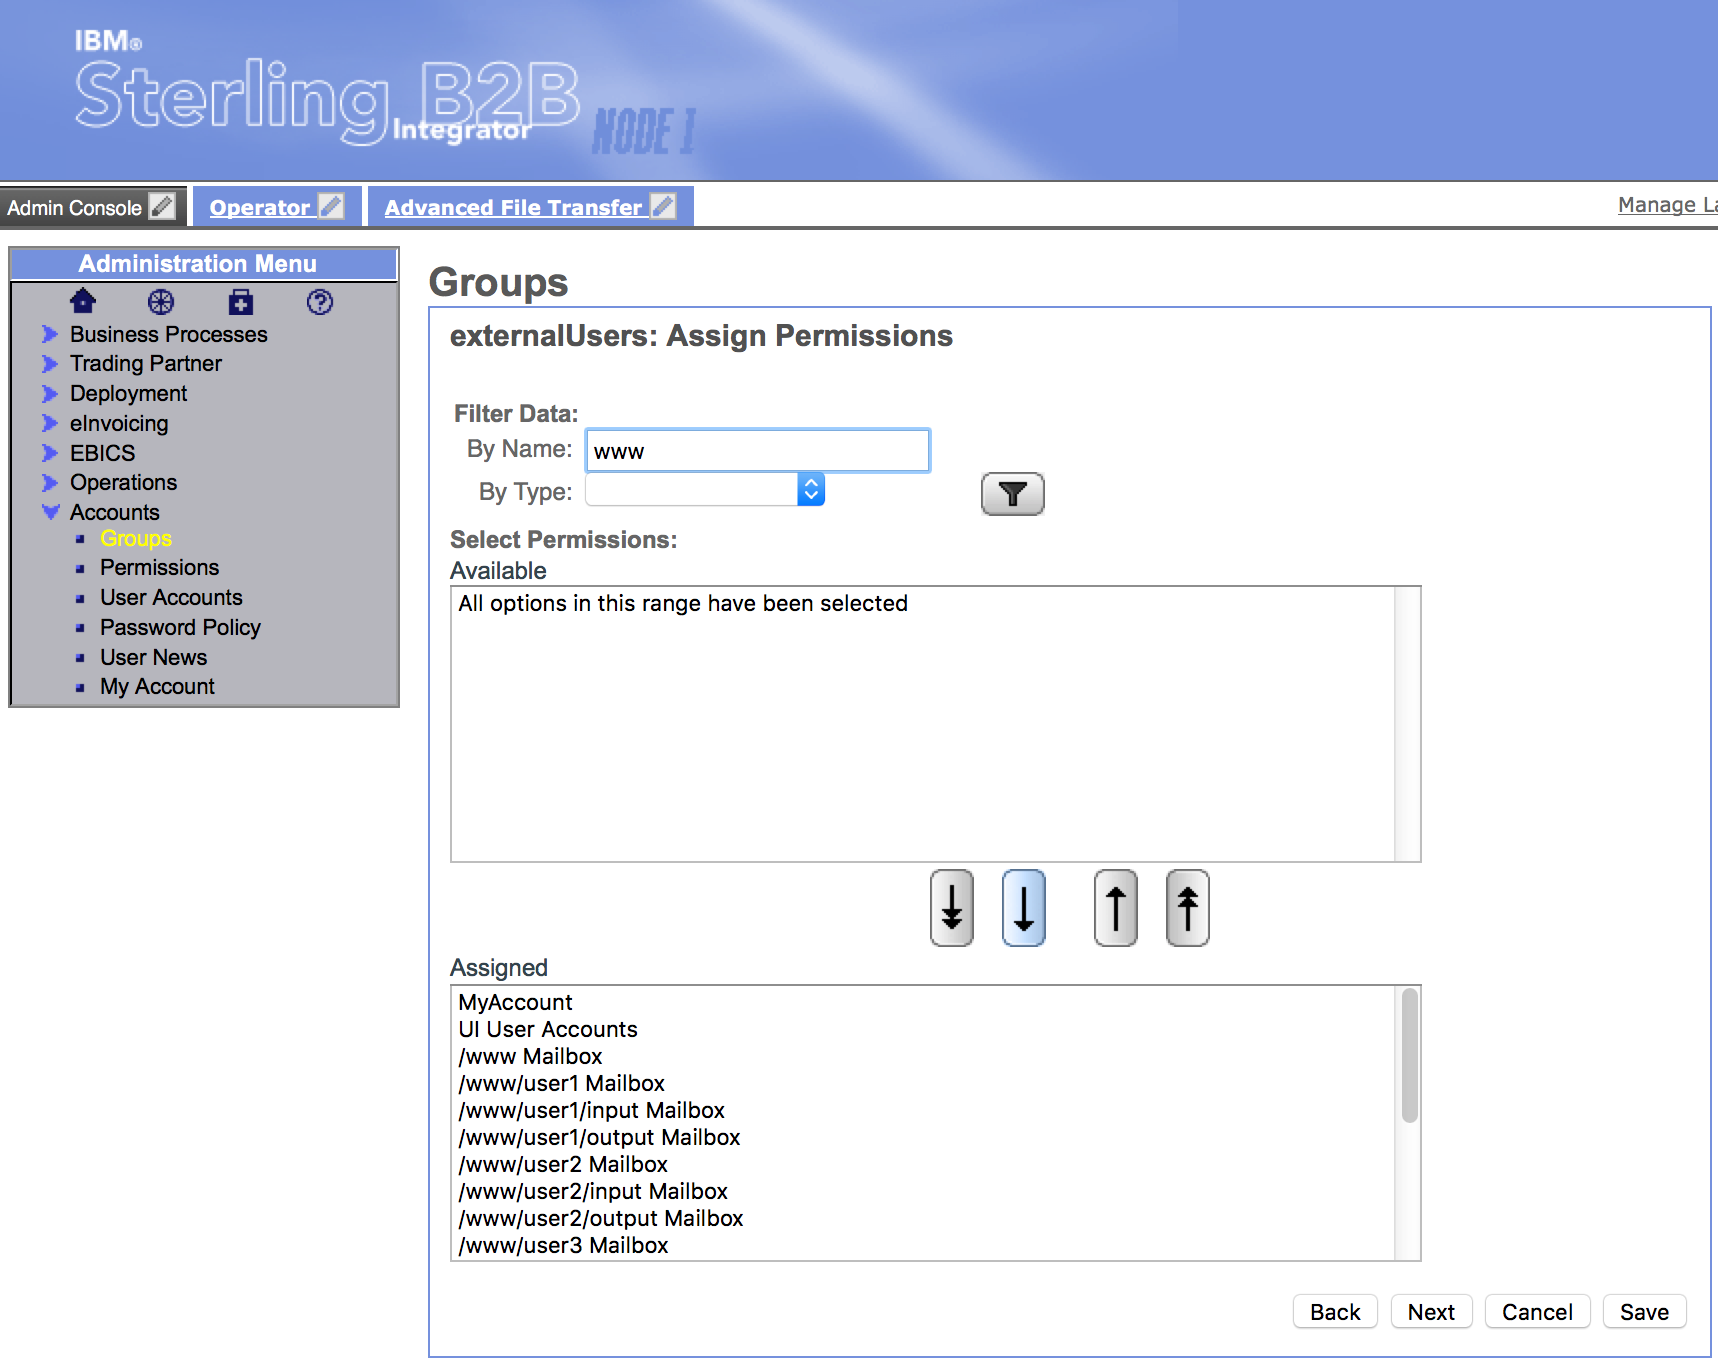 Groups - Assign Permissions - Assigned